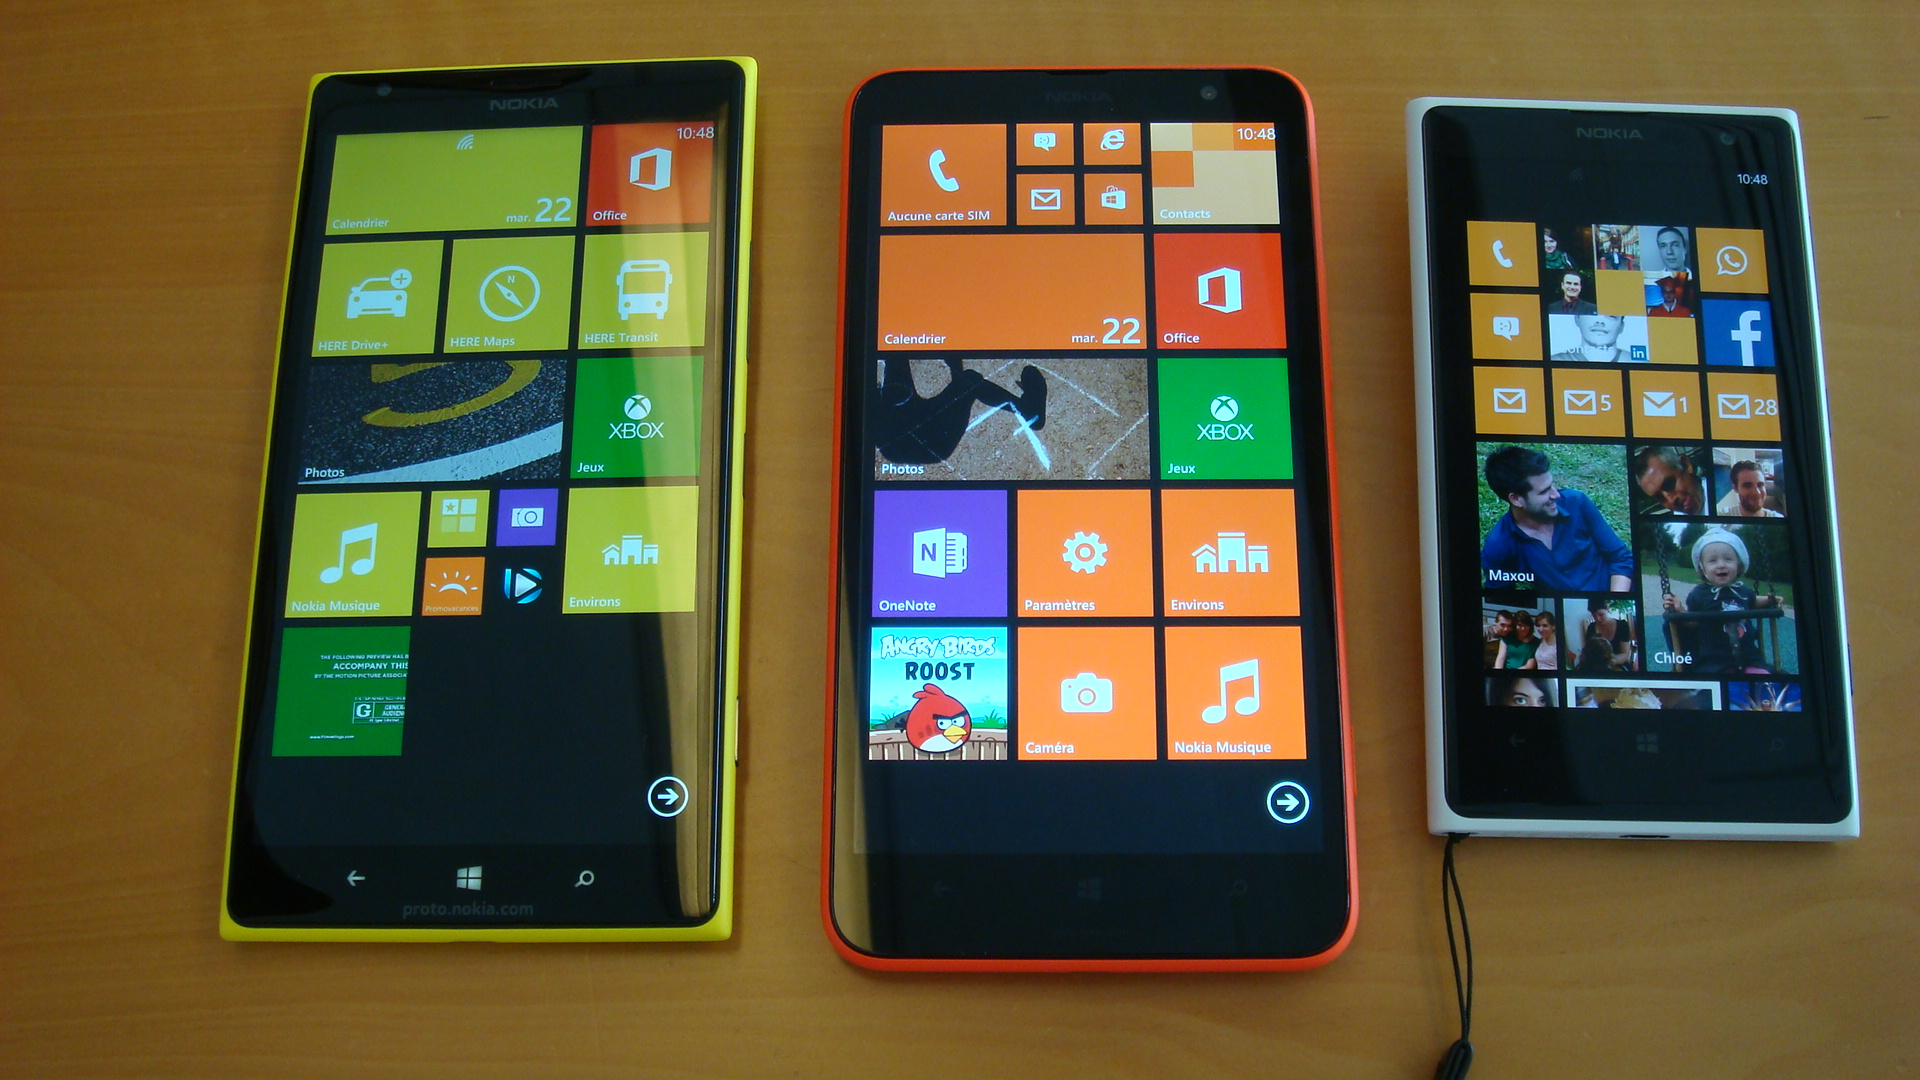 Nokia Lumia 1320 with Six-inch, 720p HD display, 4G LTE connectivity and